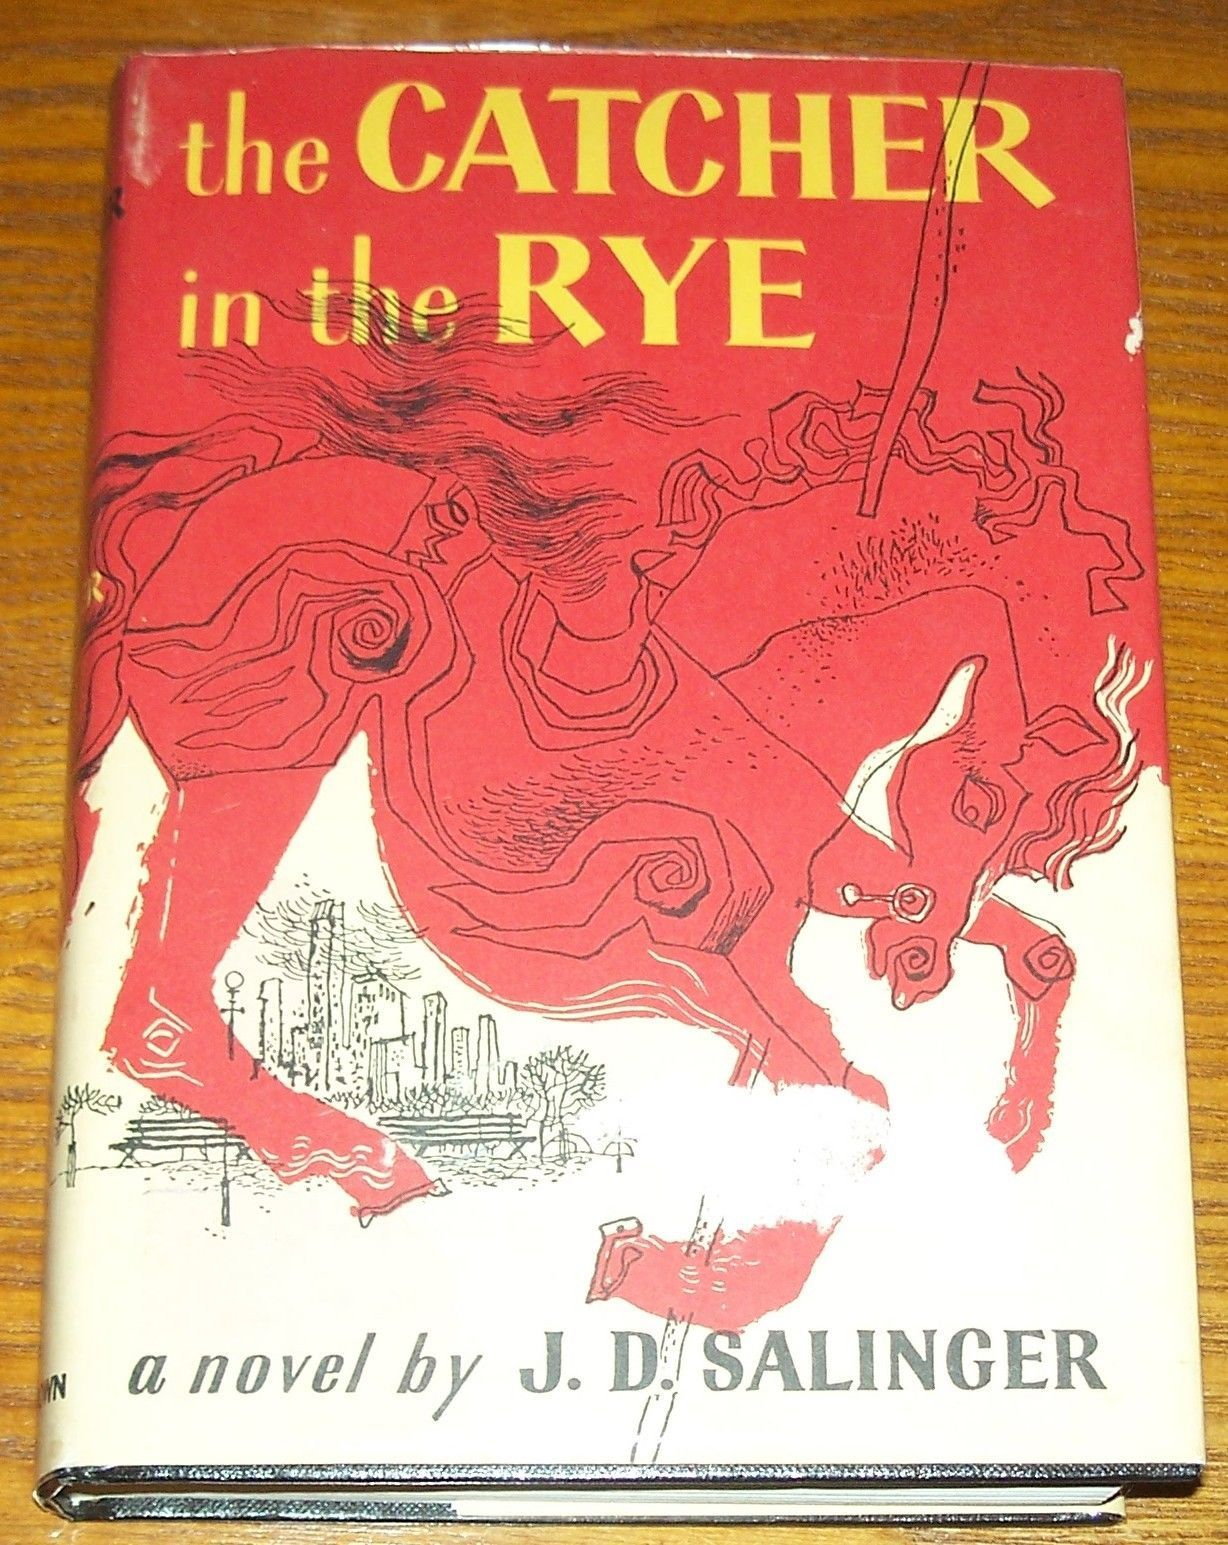 jd salingers catcher in the rye essay 2013-9-15  as the catcher in the rye remains widely read at various levels of popular and  los angeles review of books, 6671 sunset blvd, ste 1521, los angeles.